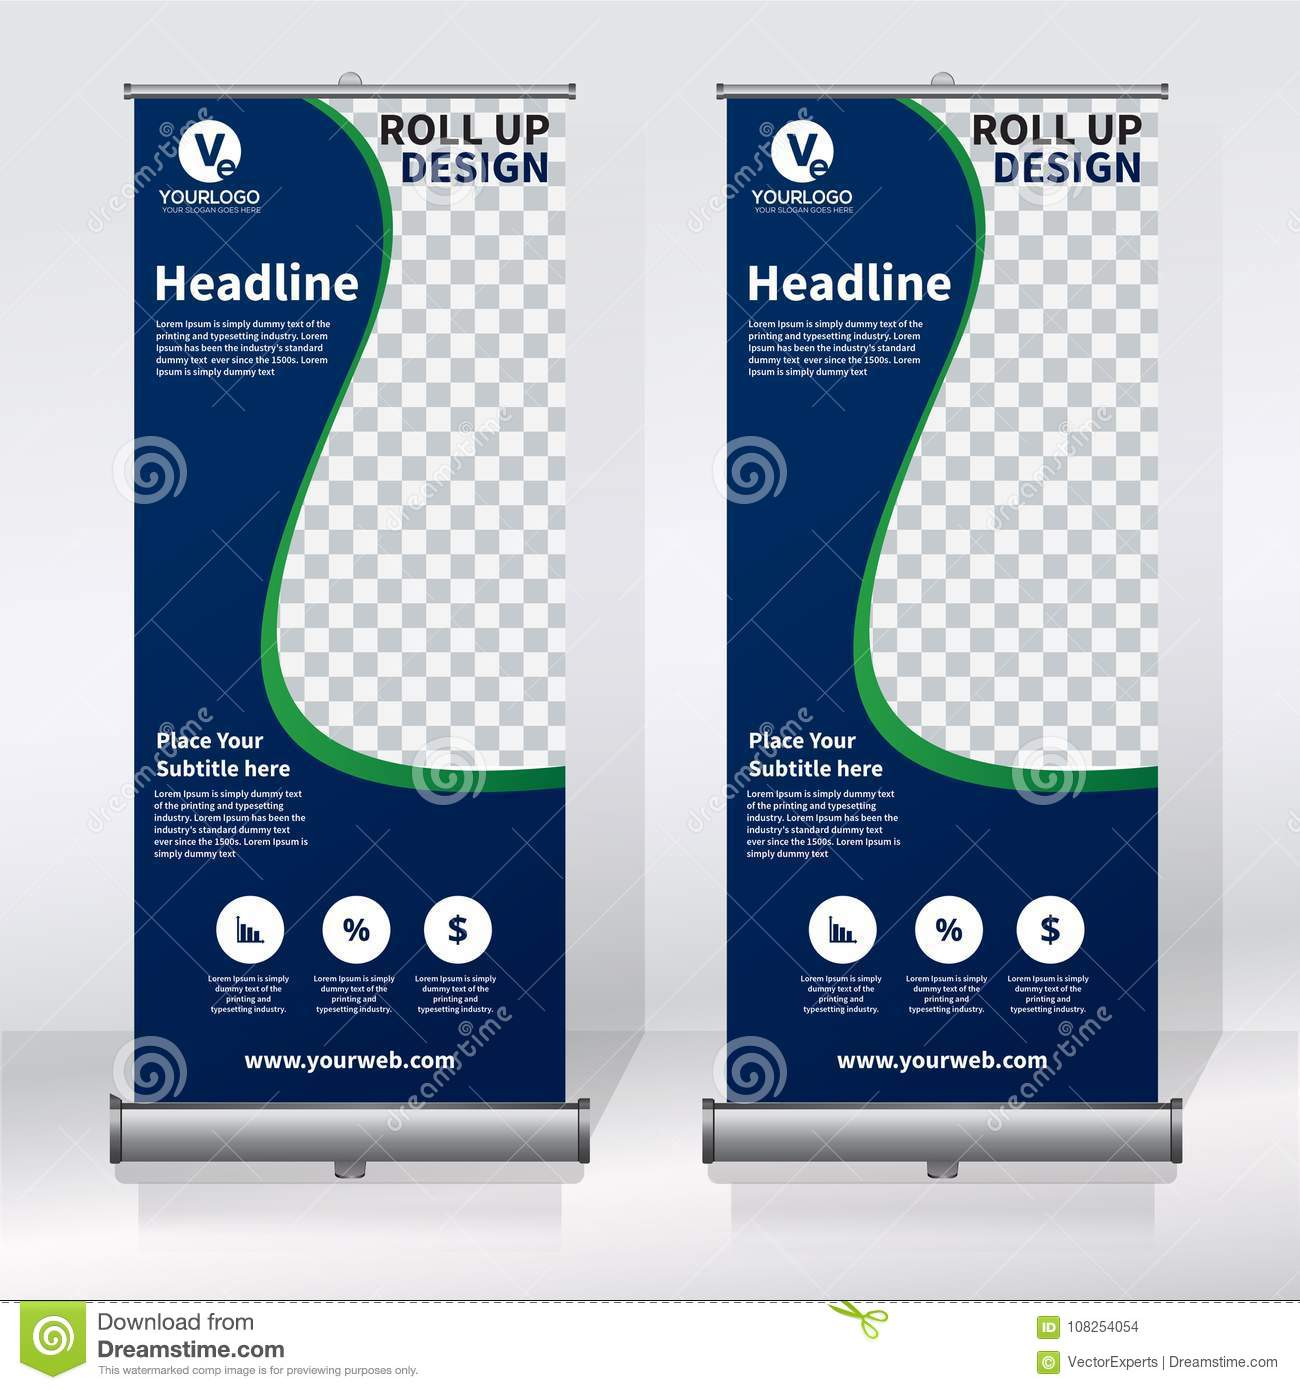 Roll Up Banner Design Template Vertical Abstract Background Pull Up Design Modern X Banner Rectangle Size Stock Vector Illustration Of Clean Illustration 108254054